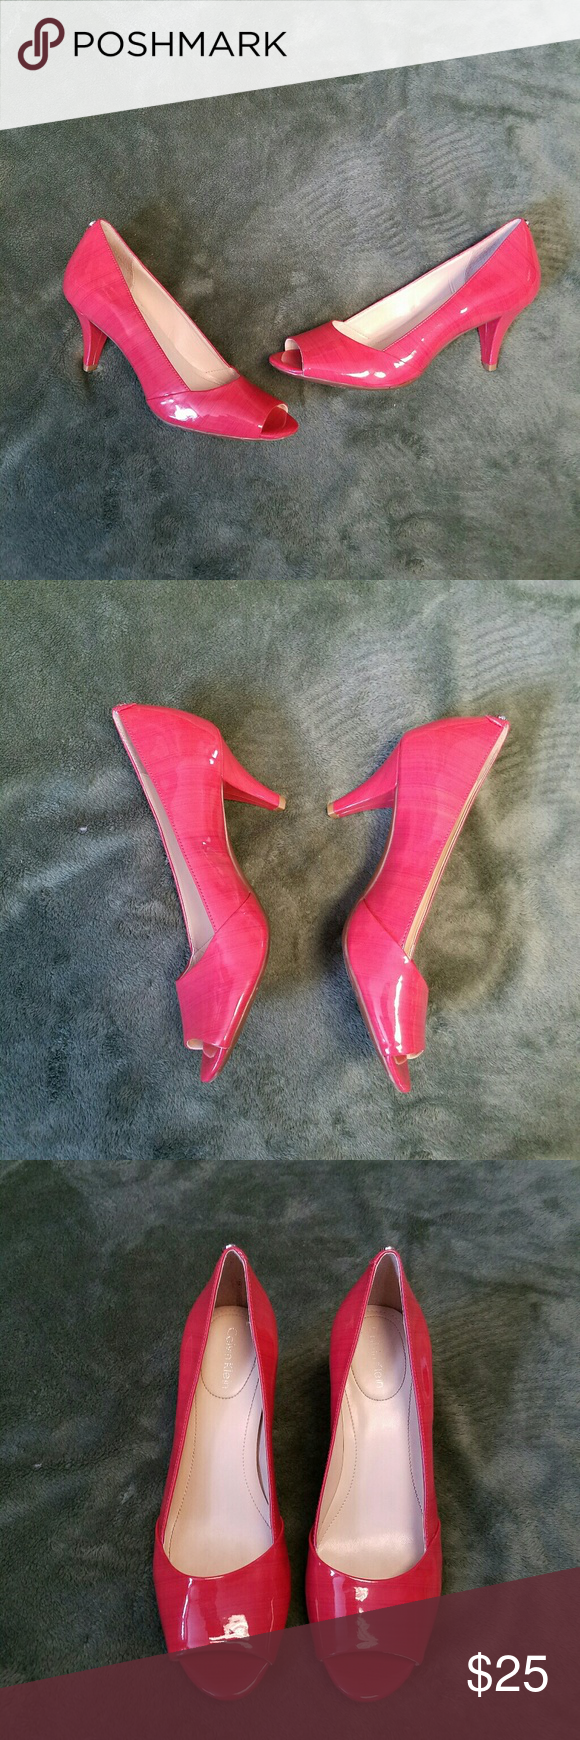 """Patent Parisa Coral Calvin Klein Peep Toe Heels 6M Lovely with minimal wear.  No rips, or deep scratches.  Some minimal rubs. Look almost new. Have 2 3/4"""" heels. Deep Coral color with a striped design. Calvin Klein silver stud on upper heel back.  STYLE is Parisa.  Sz 6M. (Prioritybox) Calvin Klein Shoes Heels"""